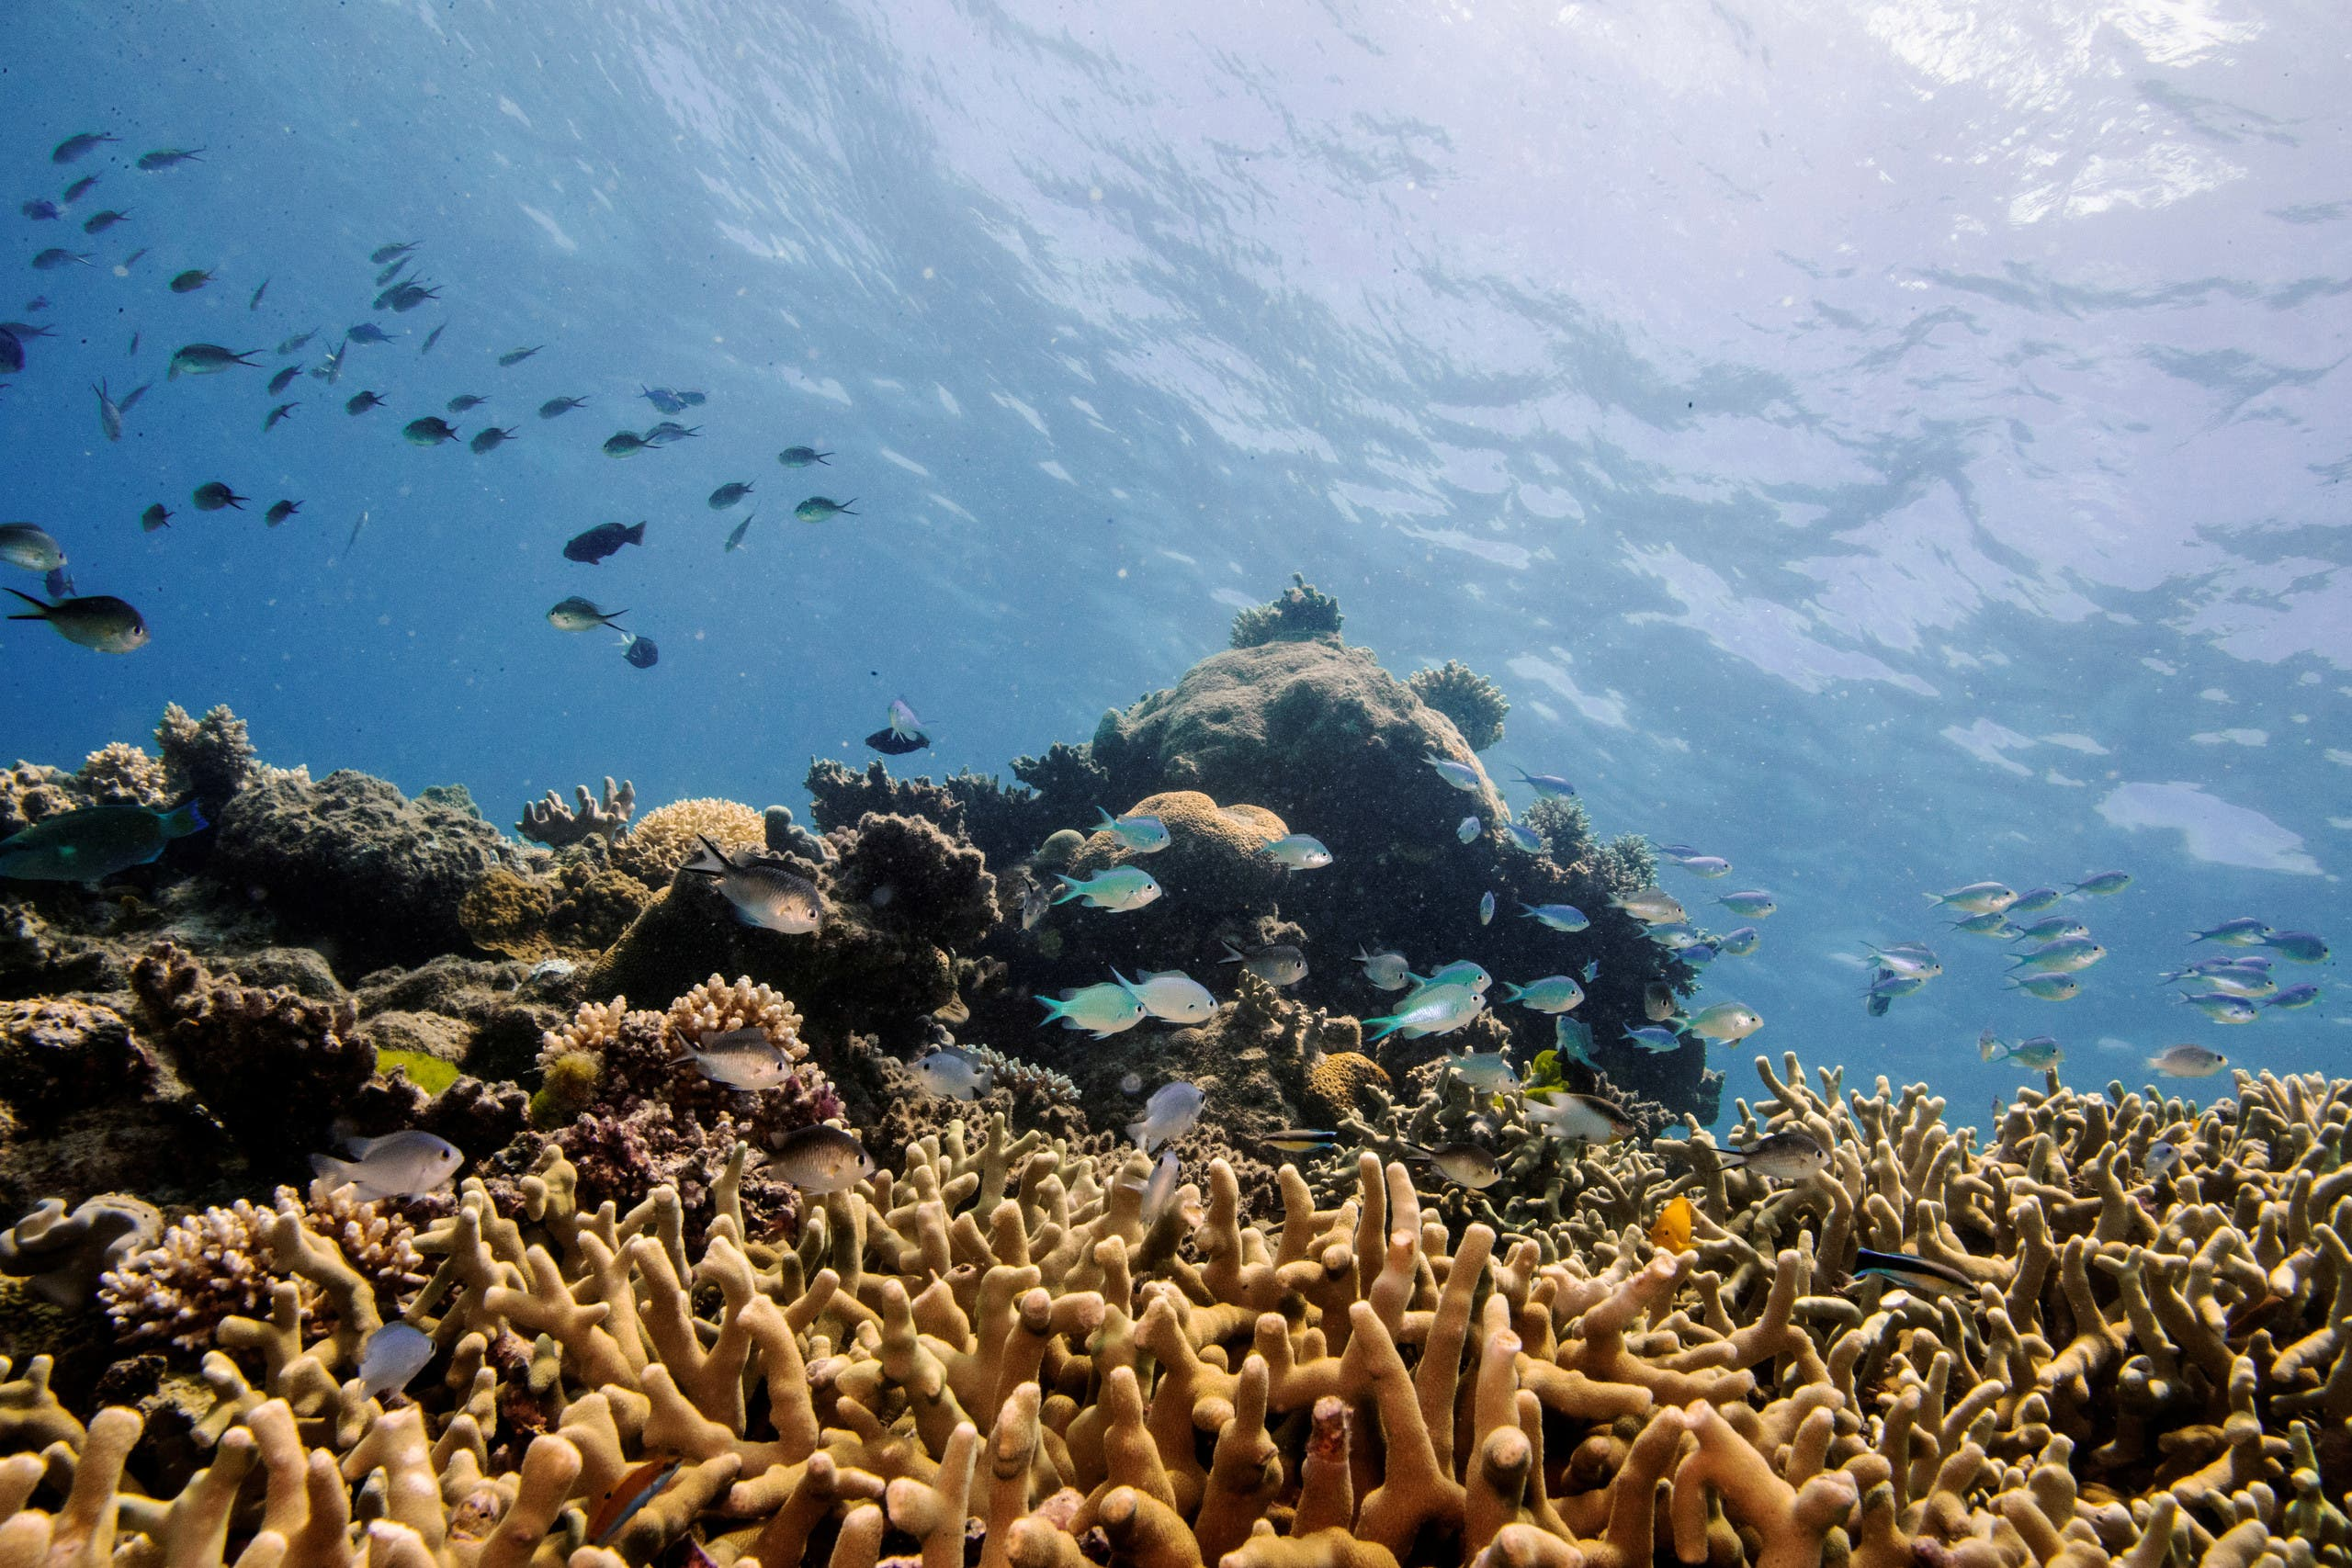 The World Heritage Committee is set to consider whether to add the Great Barrier Reef to UNESCO's list of endangered sites, after high-level lobbying from Australia to prevent the move. (File Photo: Reuters)